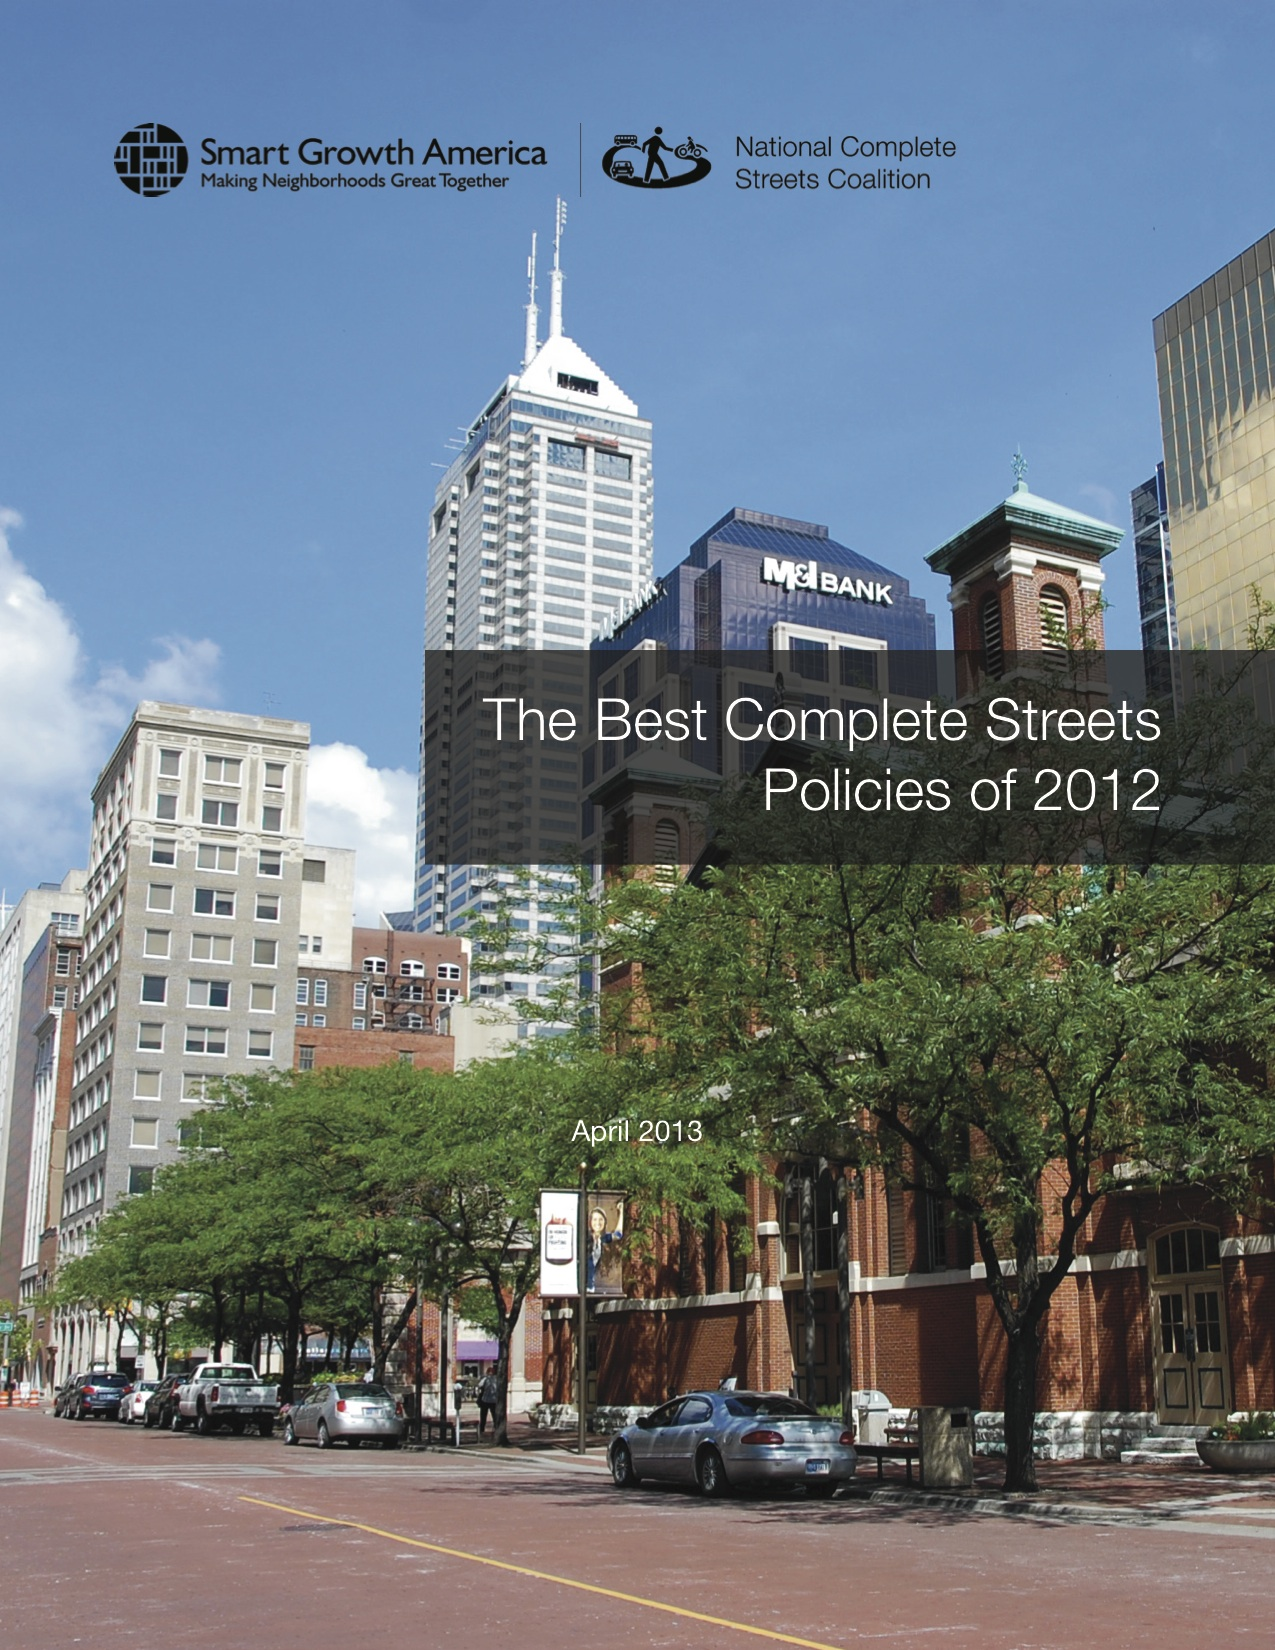 The Best Complete Streets Policies of 2012